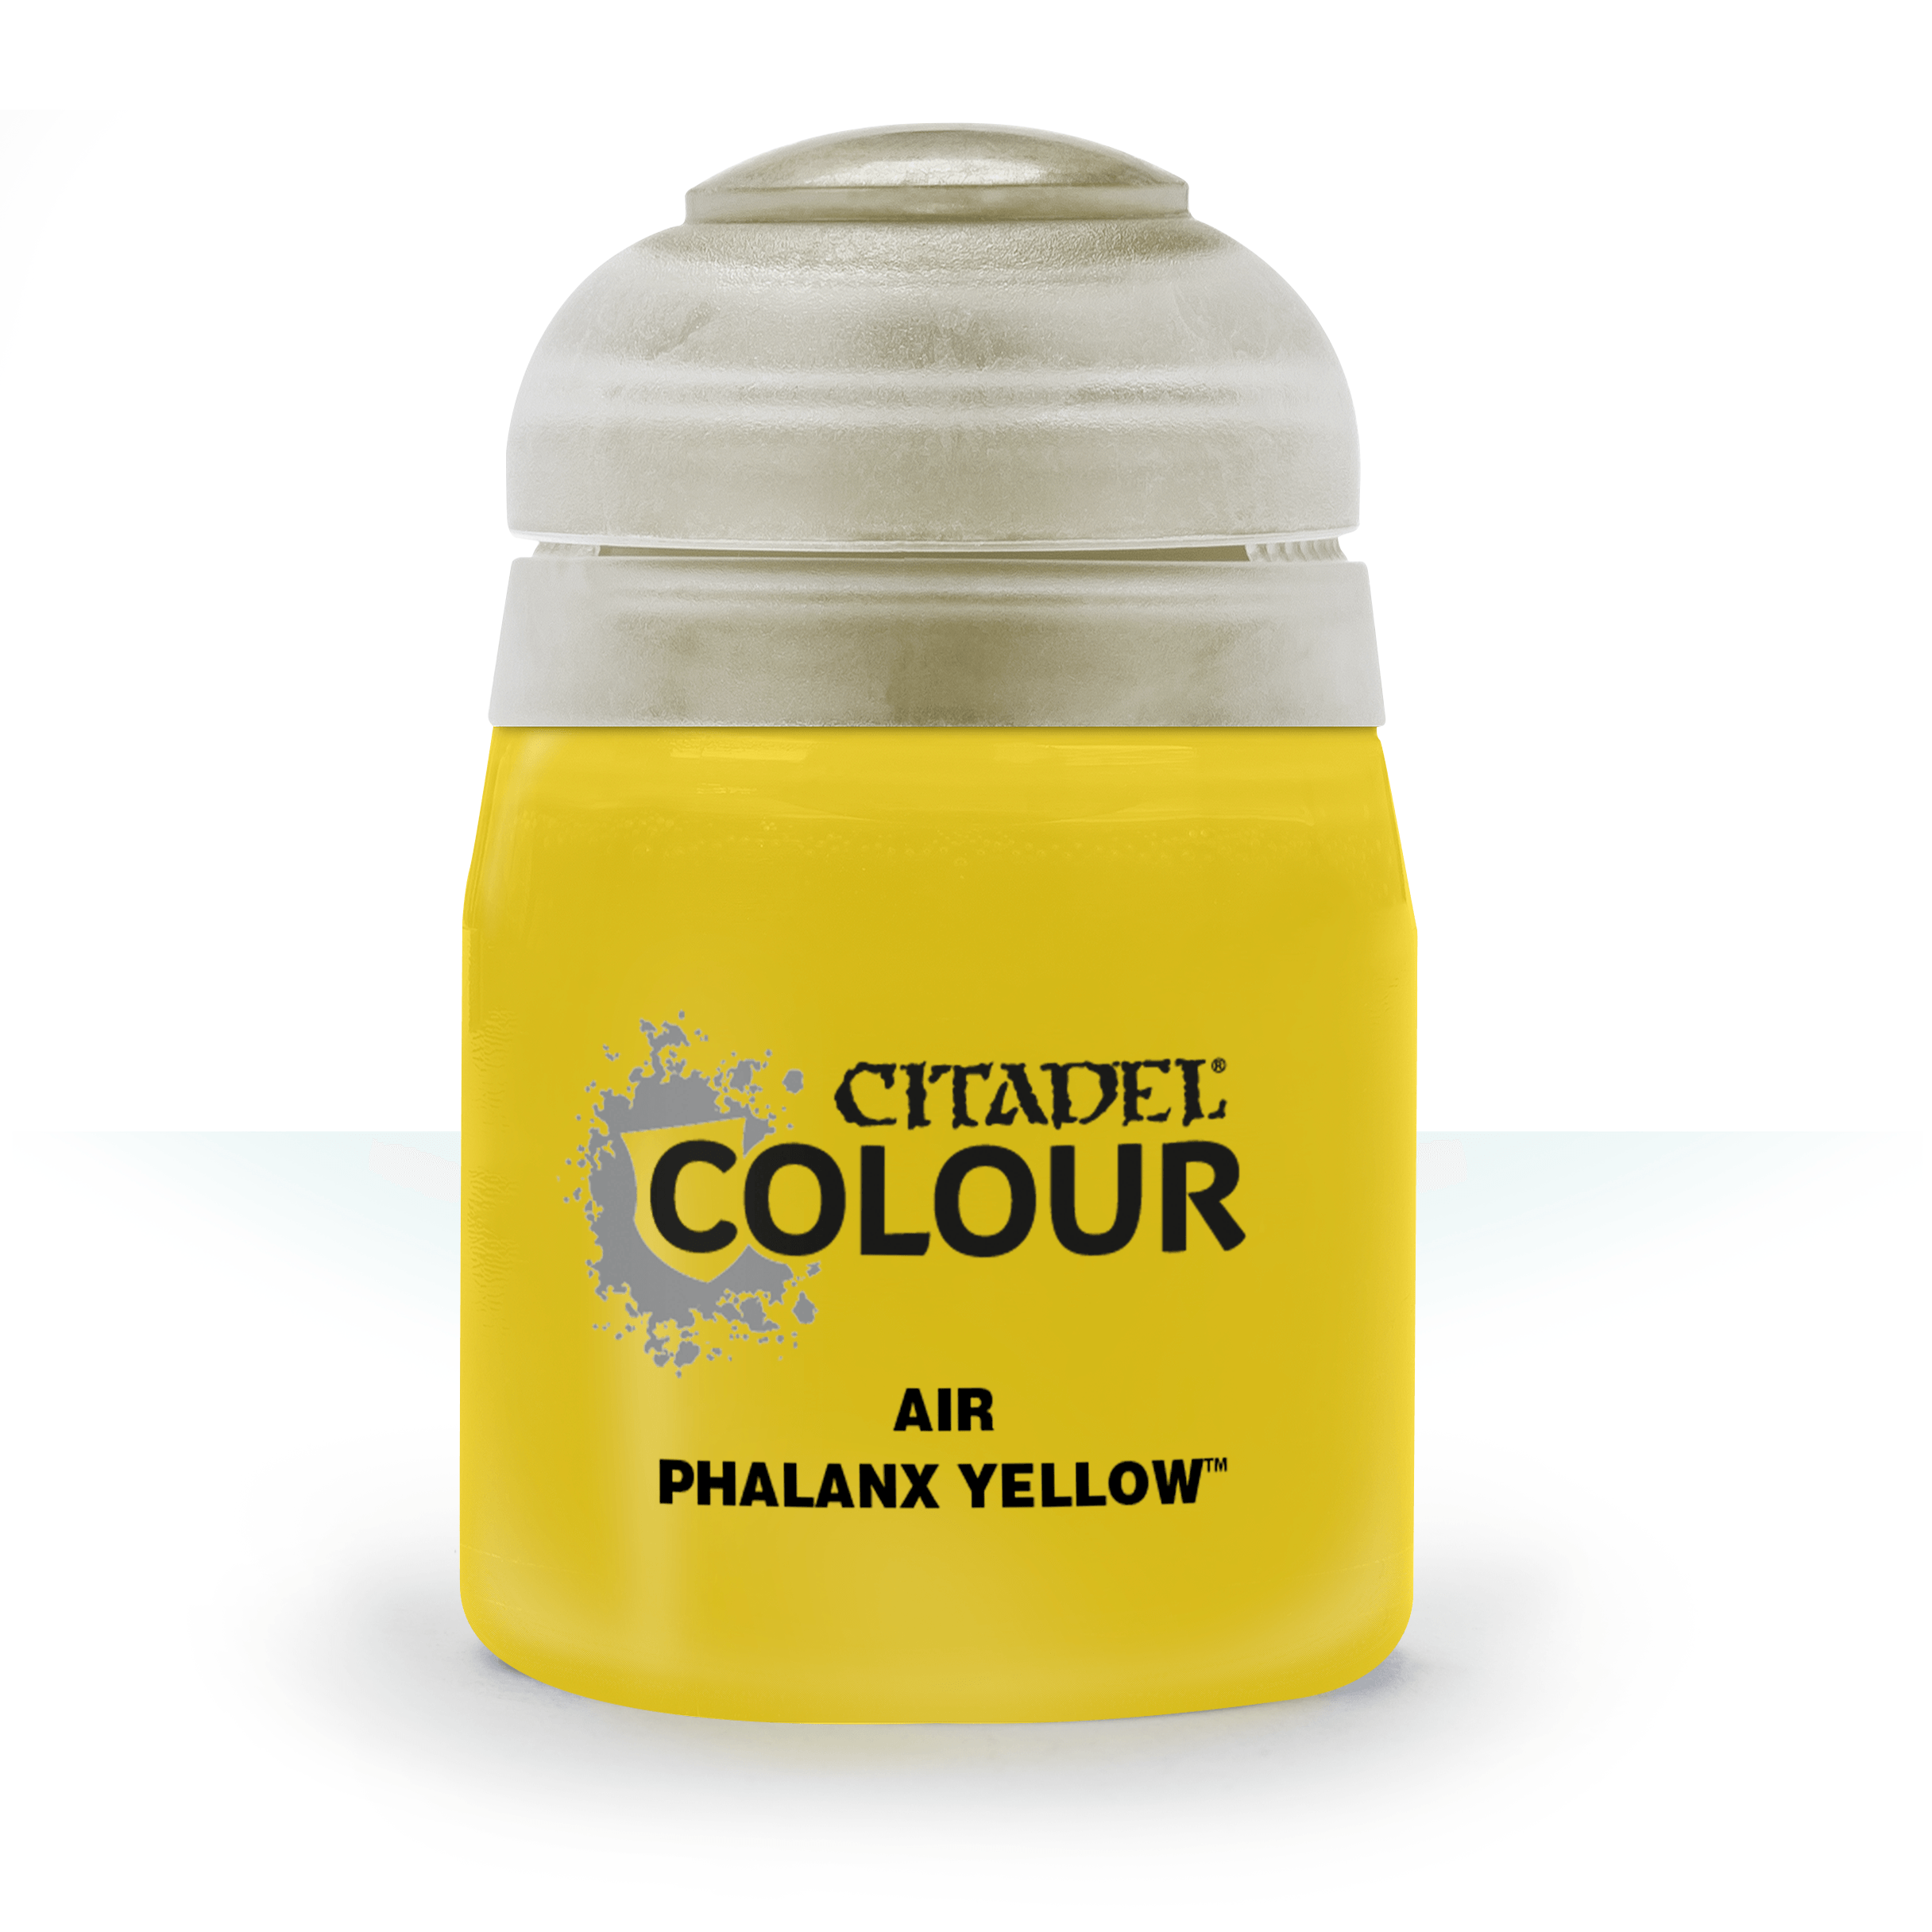 Citadel Airbrush Paints: Phalanx Yellow